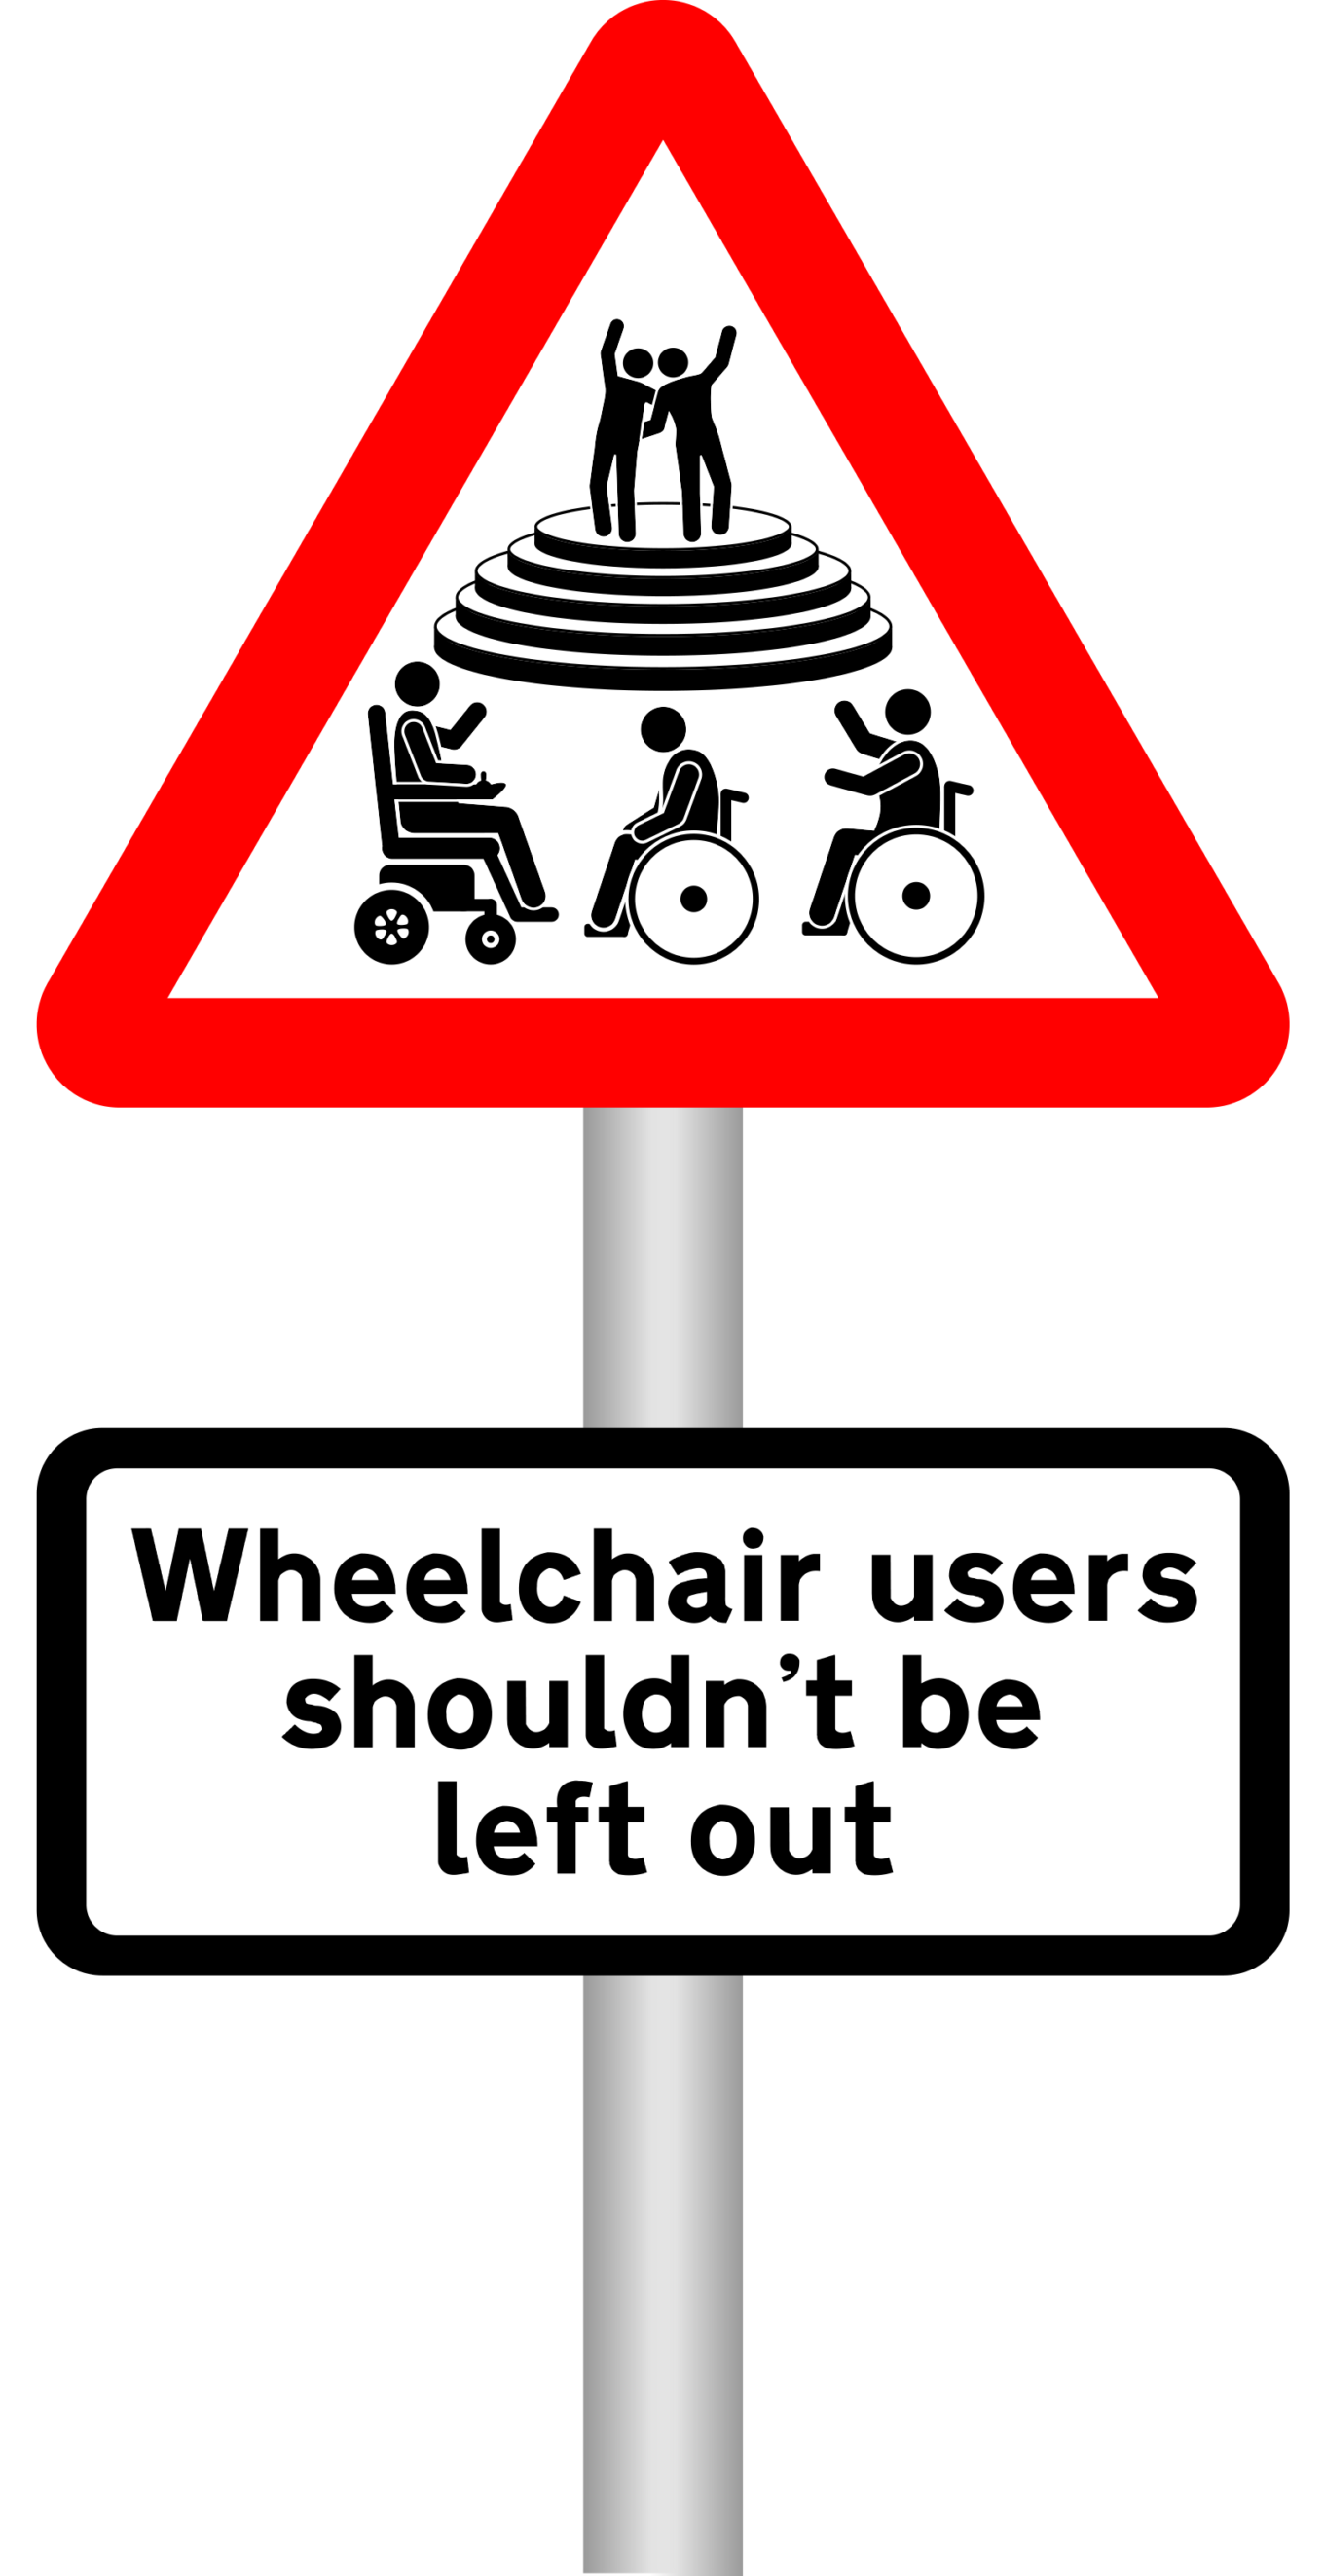 Wheelchair users shouldn't be left out